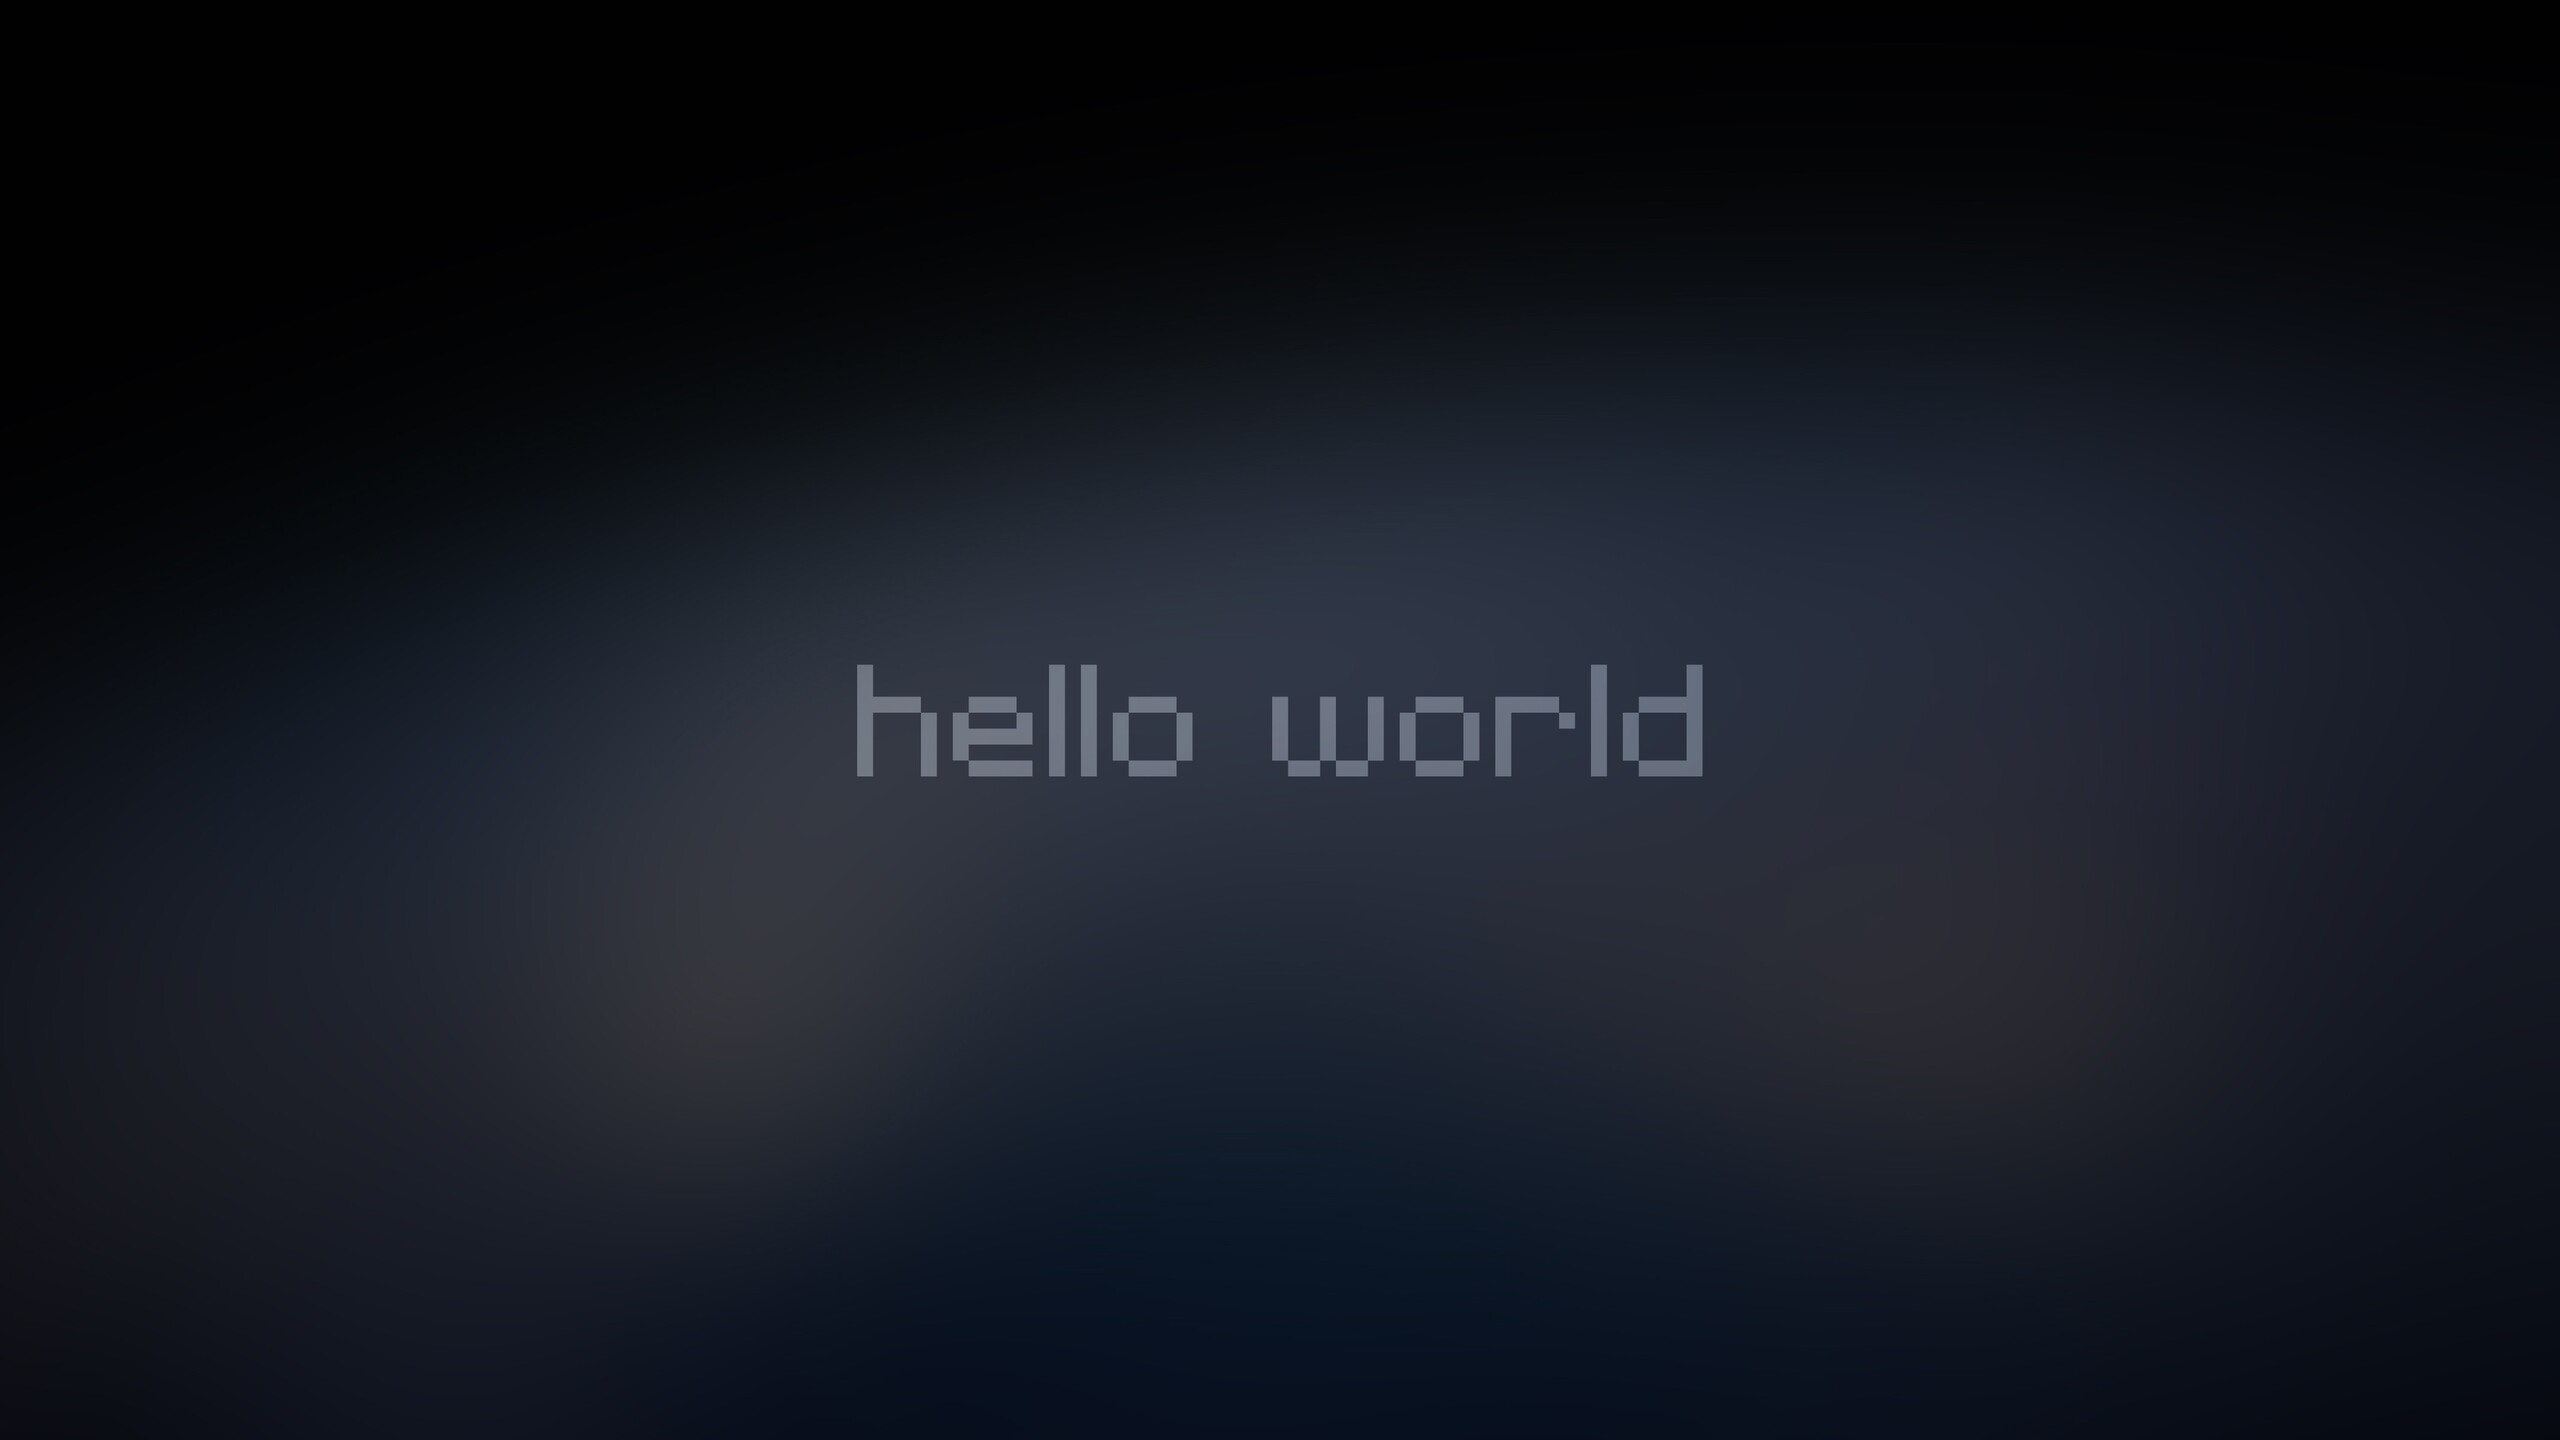 2560x1440 Hello World 4k 1440p Resolution Hd 4k Wallpapers